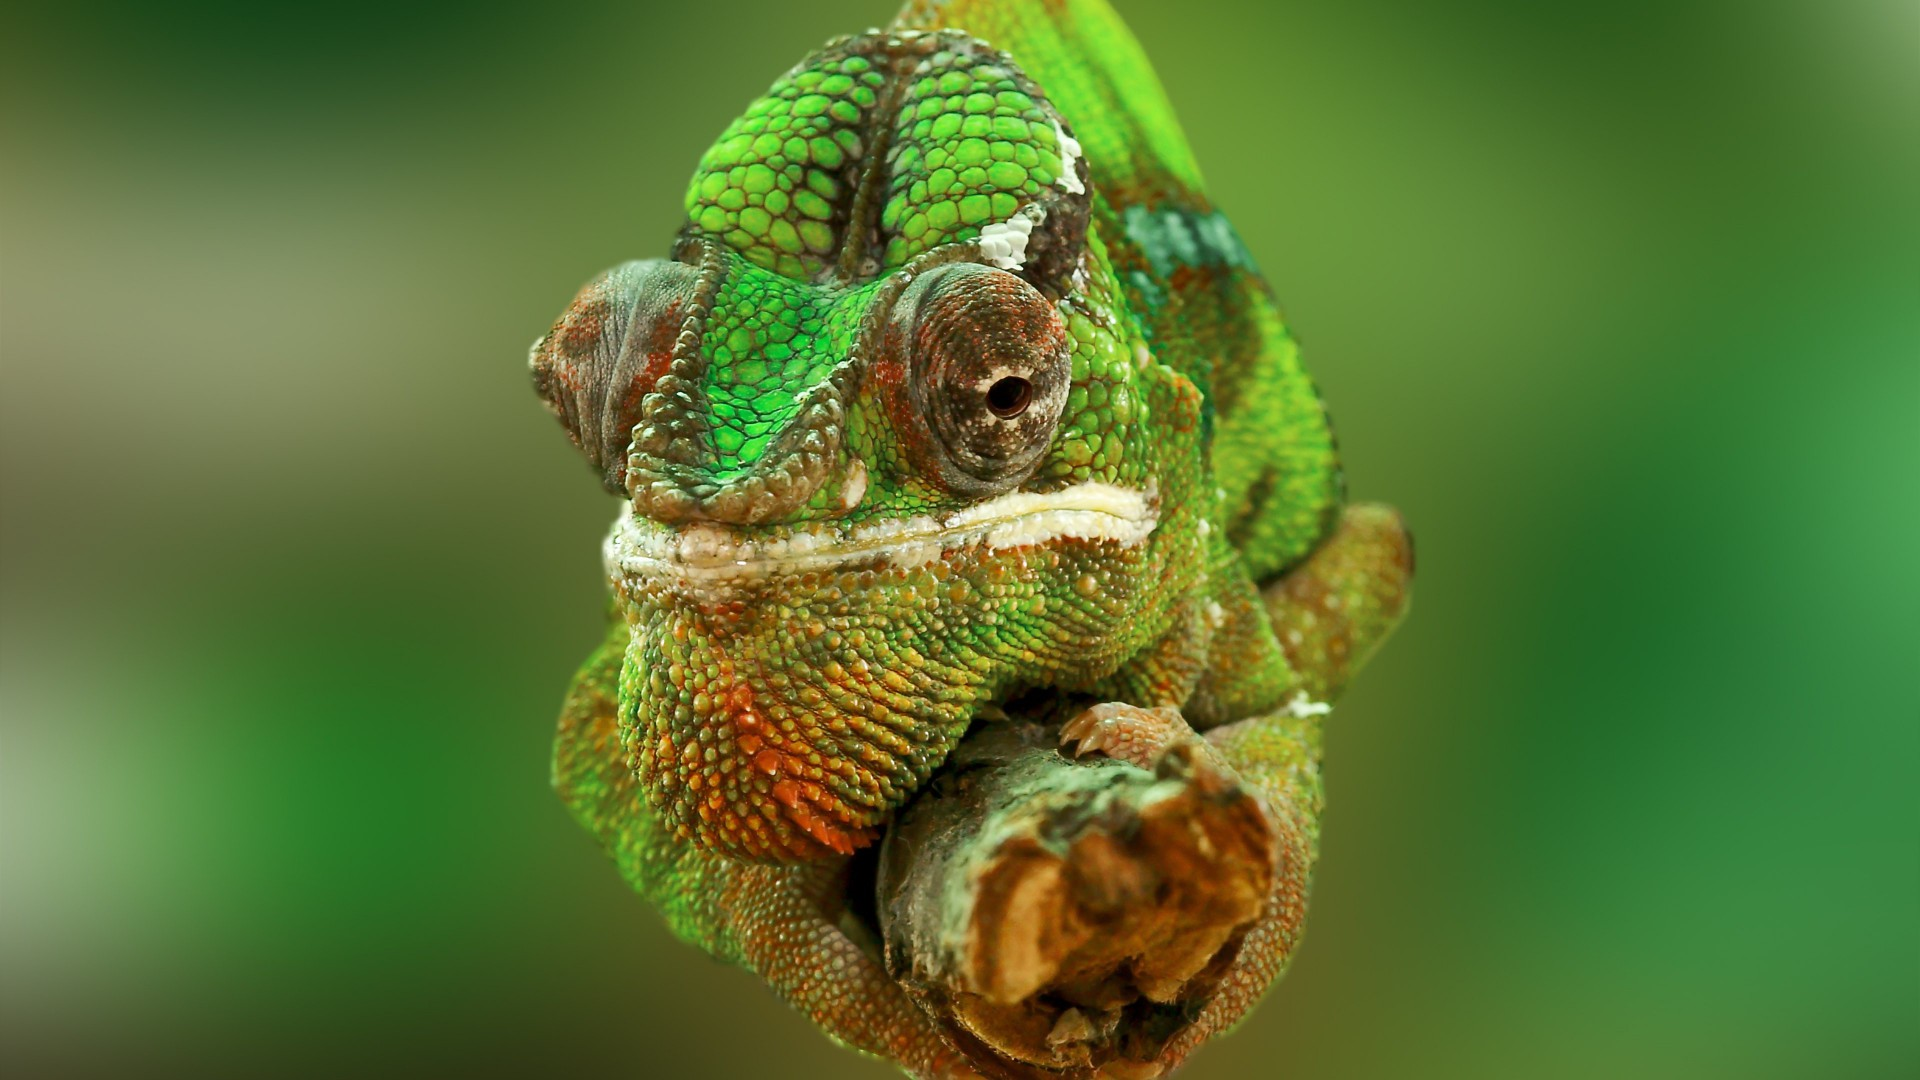 Chameleon, color change, lizard, Veiled chameleon, Panther chameleon, Jackson's chameleon, macro photo (horizontal)